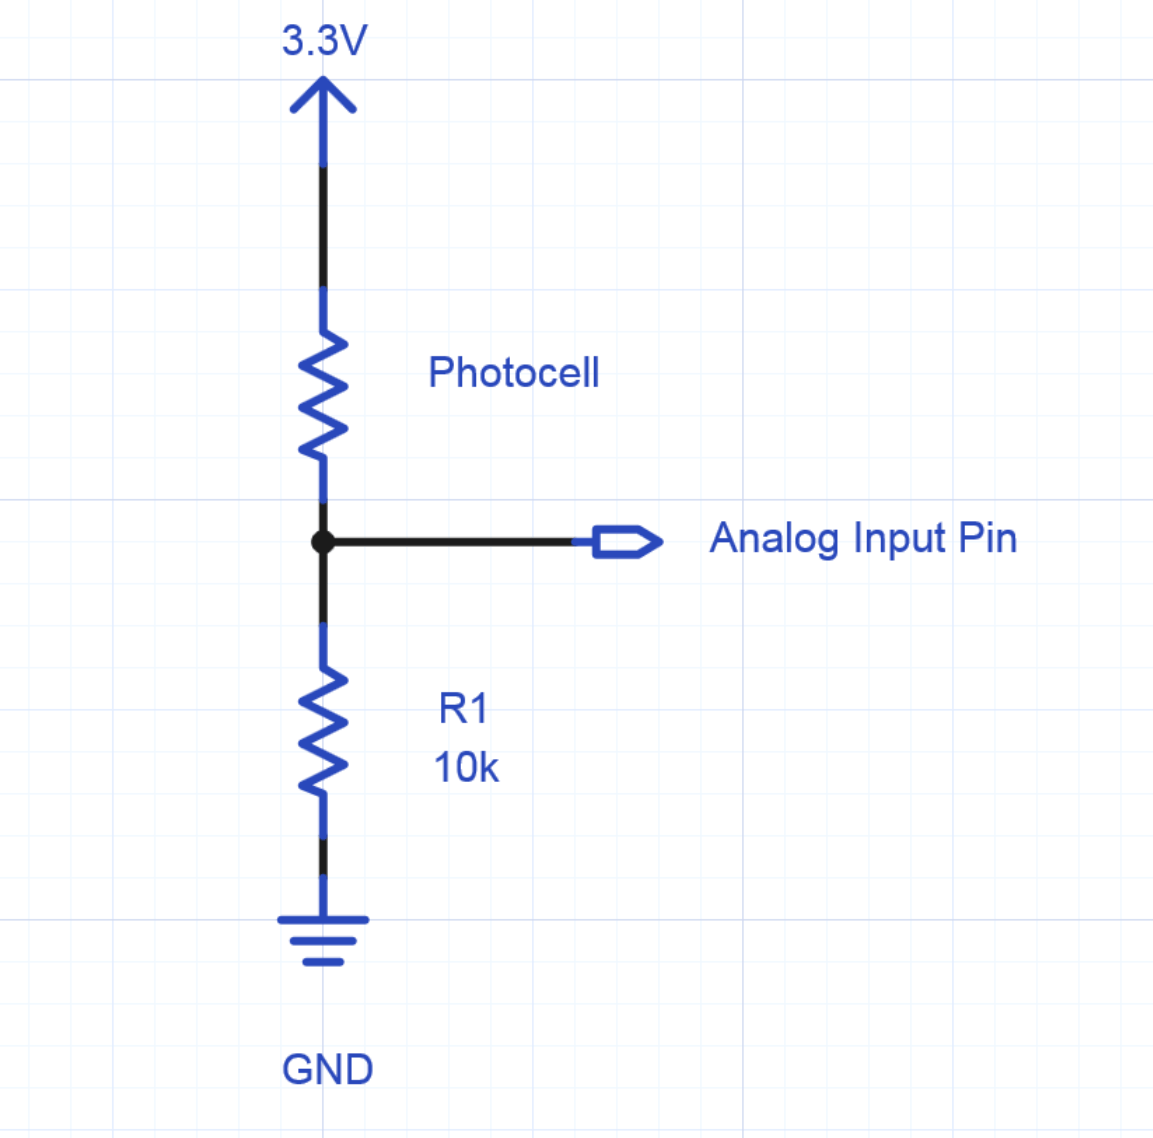 hight resolution of schematic of photocell hookup to an analog input